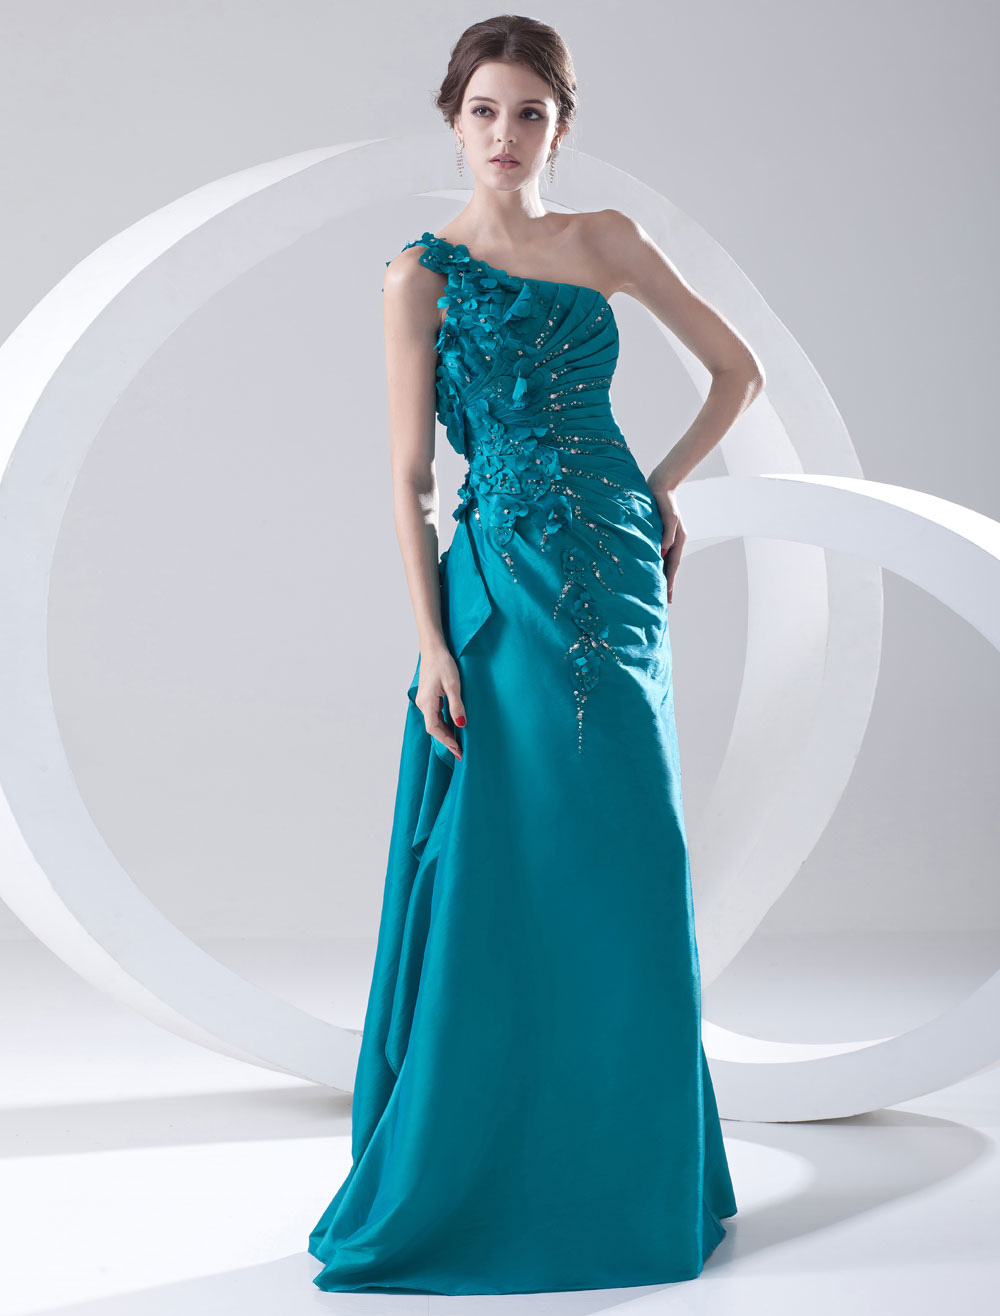 Taffeta Evening Dress One Shoulder Flowers Beading Long Prom Dress Teal Ruched Floor Length Formal Dress